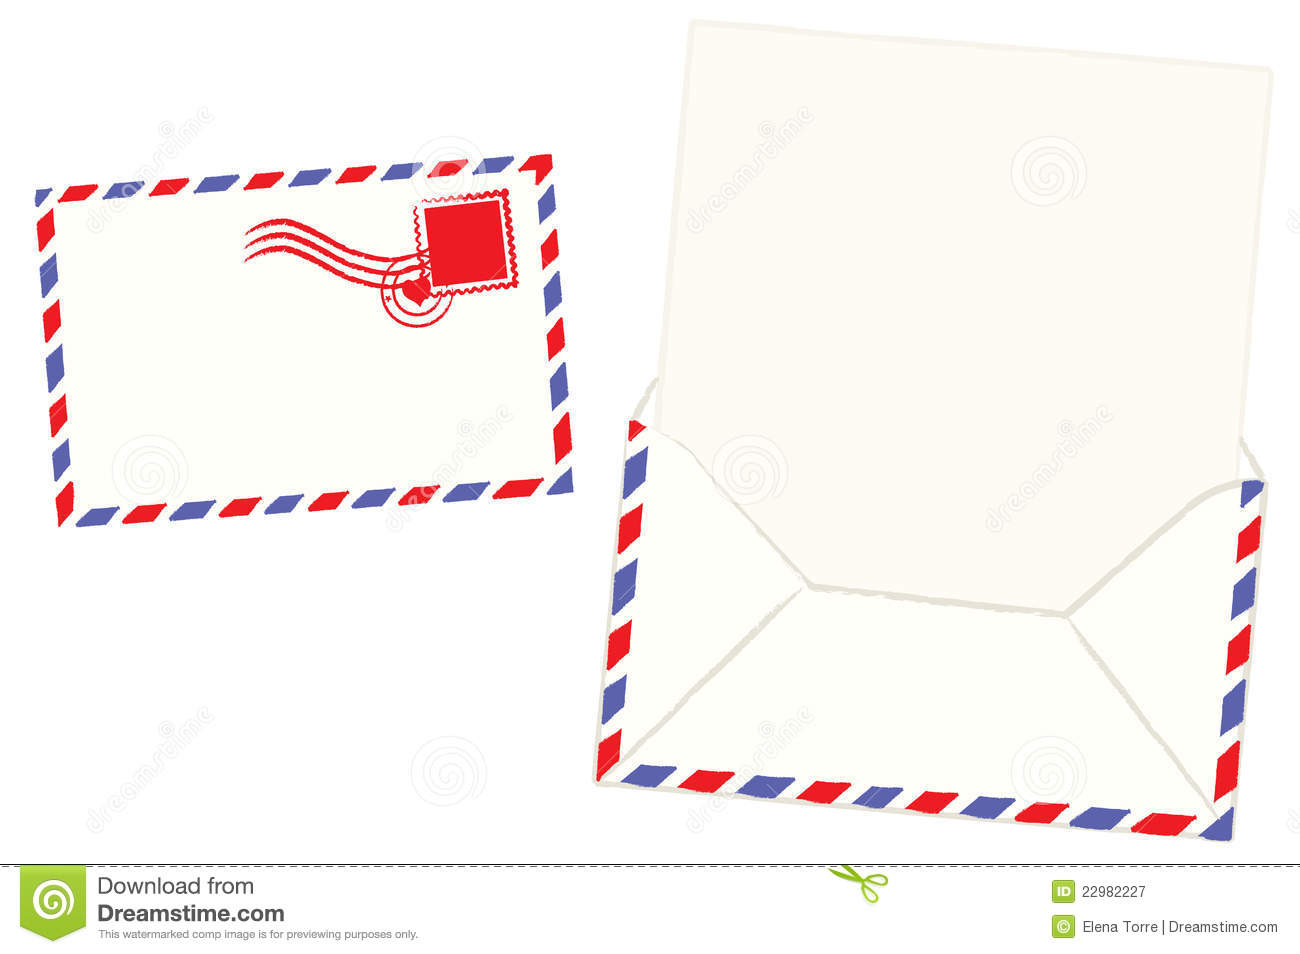 Illustration of blank airmail letter and envelope + vector eps file.